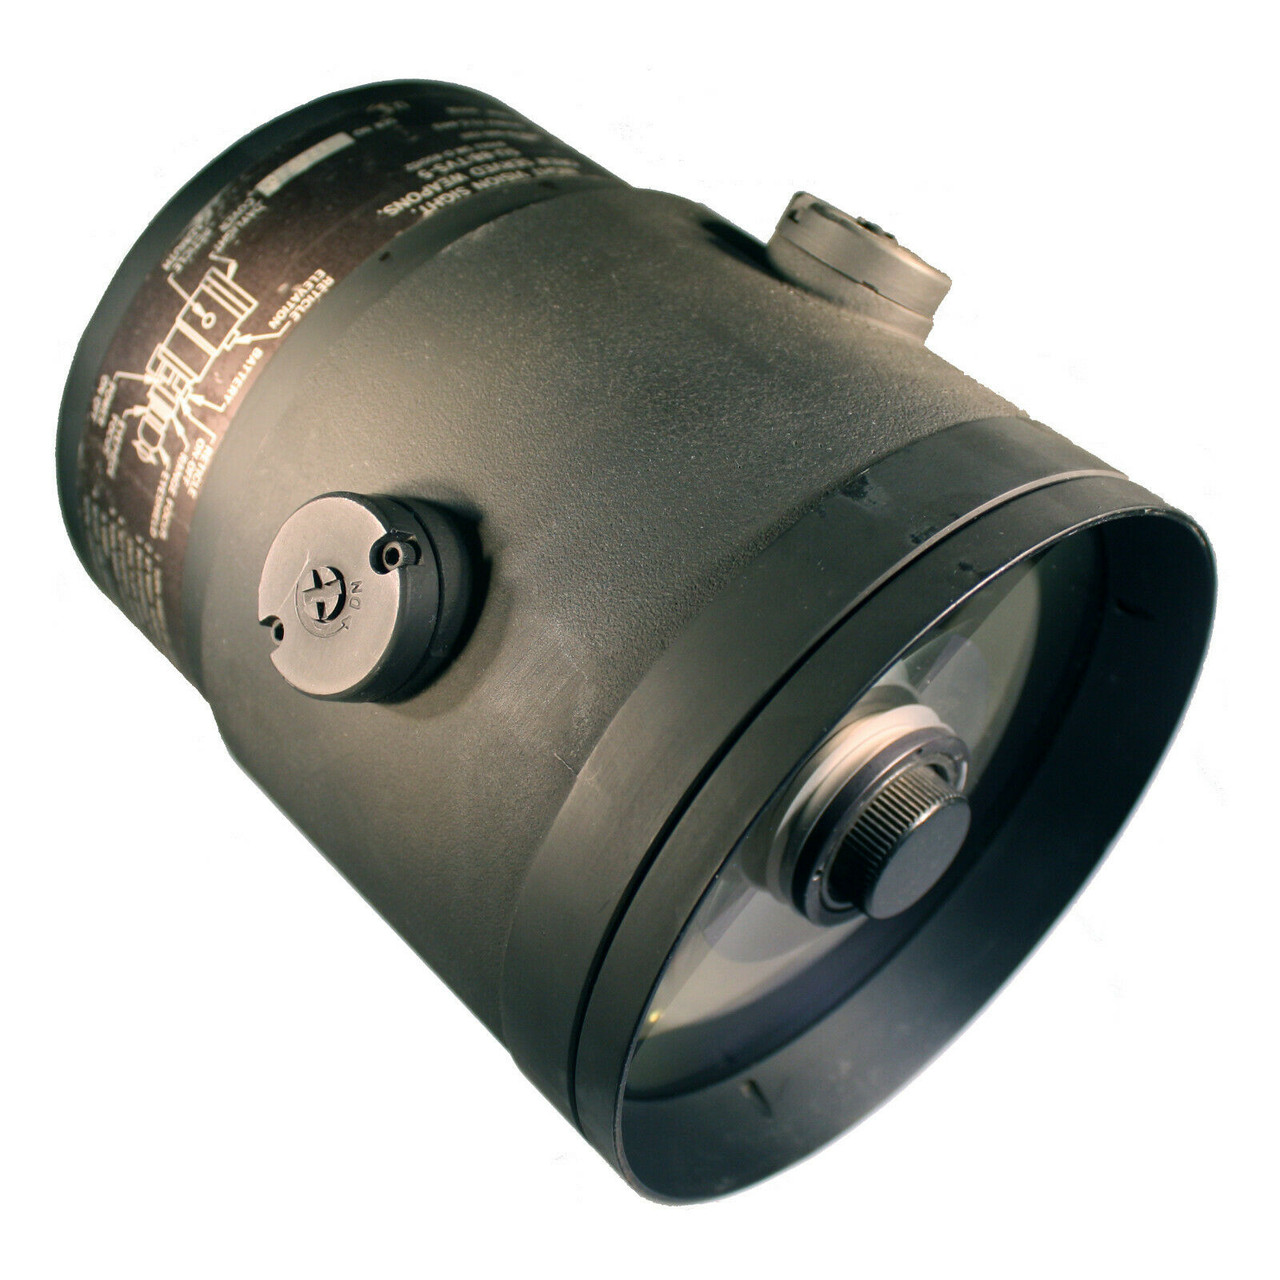 105mm Front Objective Lens for AN/PVS-4 AN/TVS-5 Night Vision Scope Weapon Sight